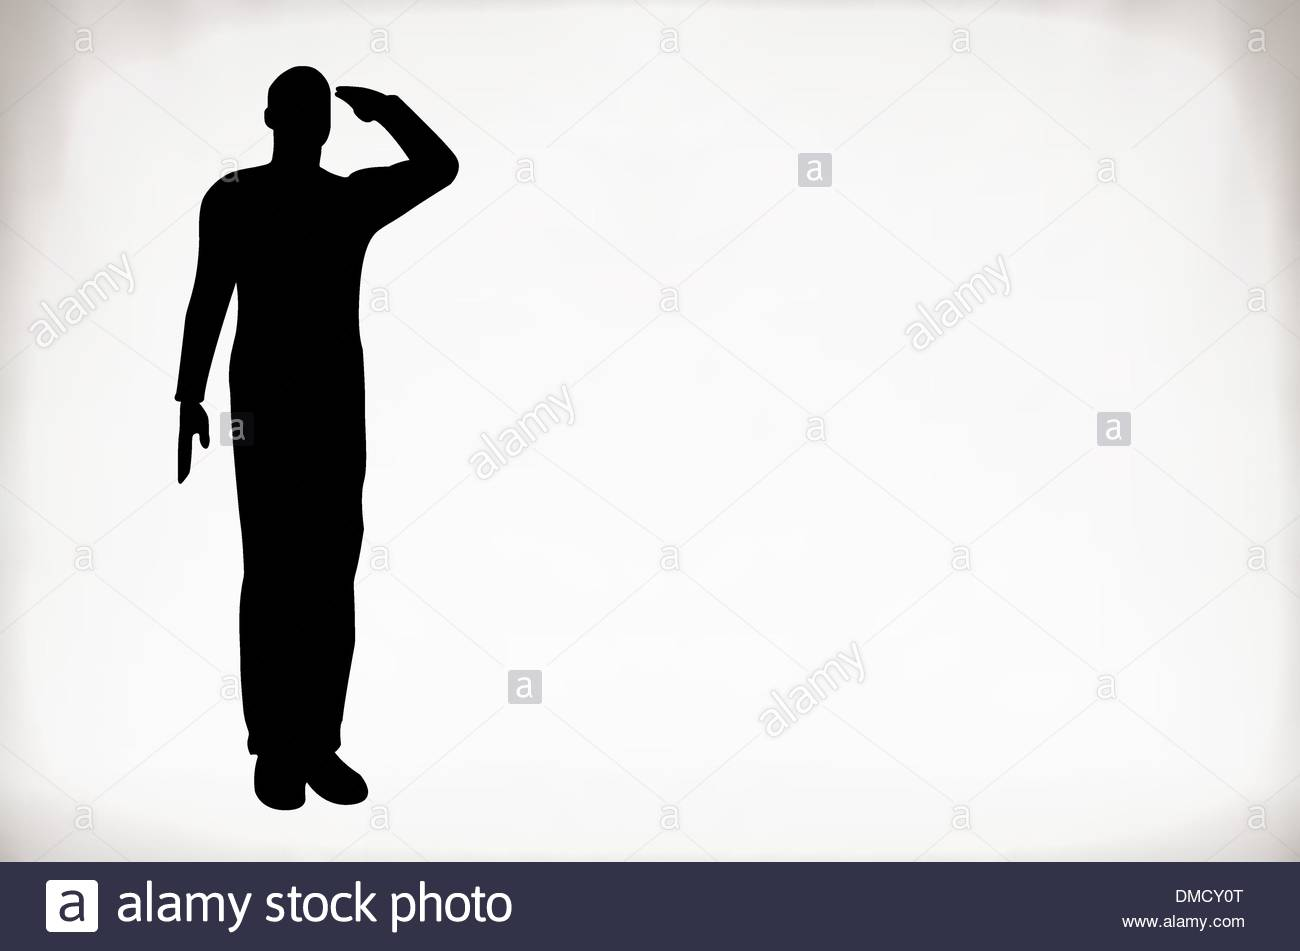 1300x951 Silhouette Of An Army Soldier Saluting Stock Vector Art